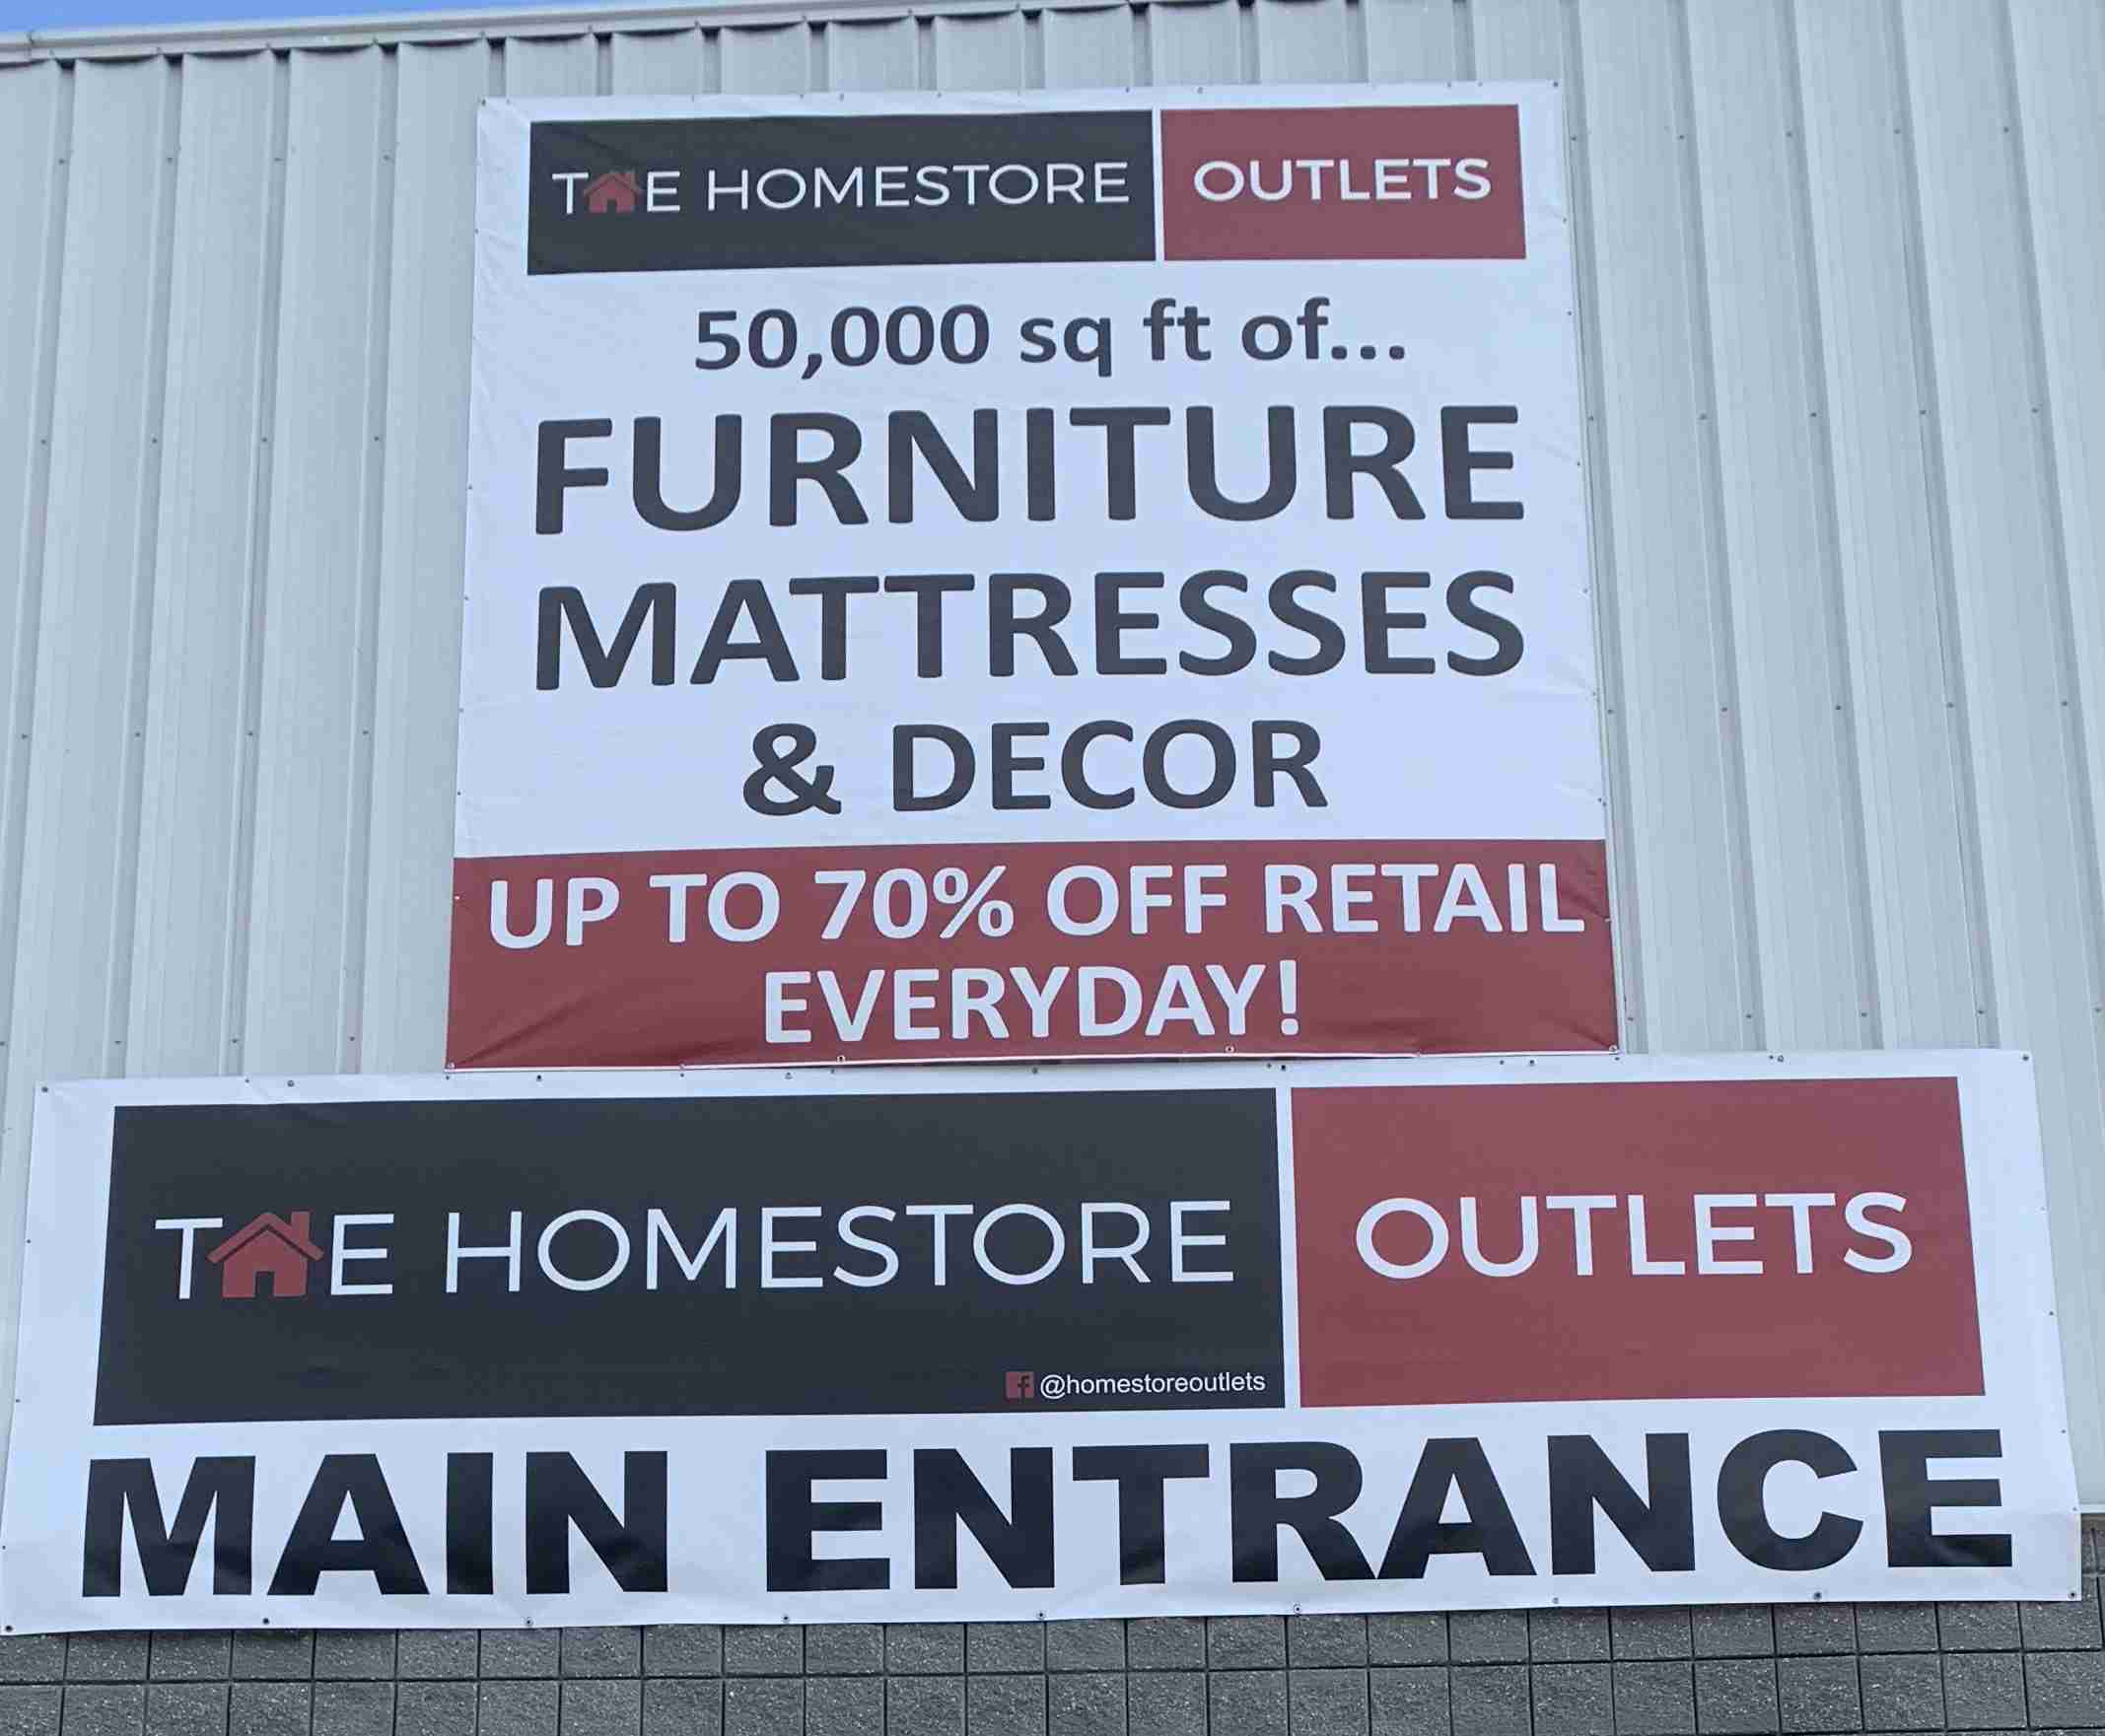 The Homestore Outlets Ocean Township NJ